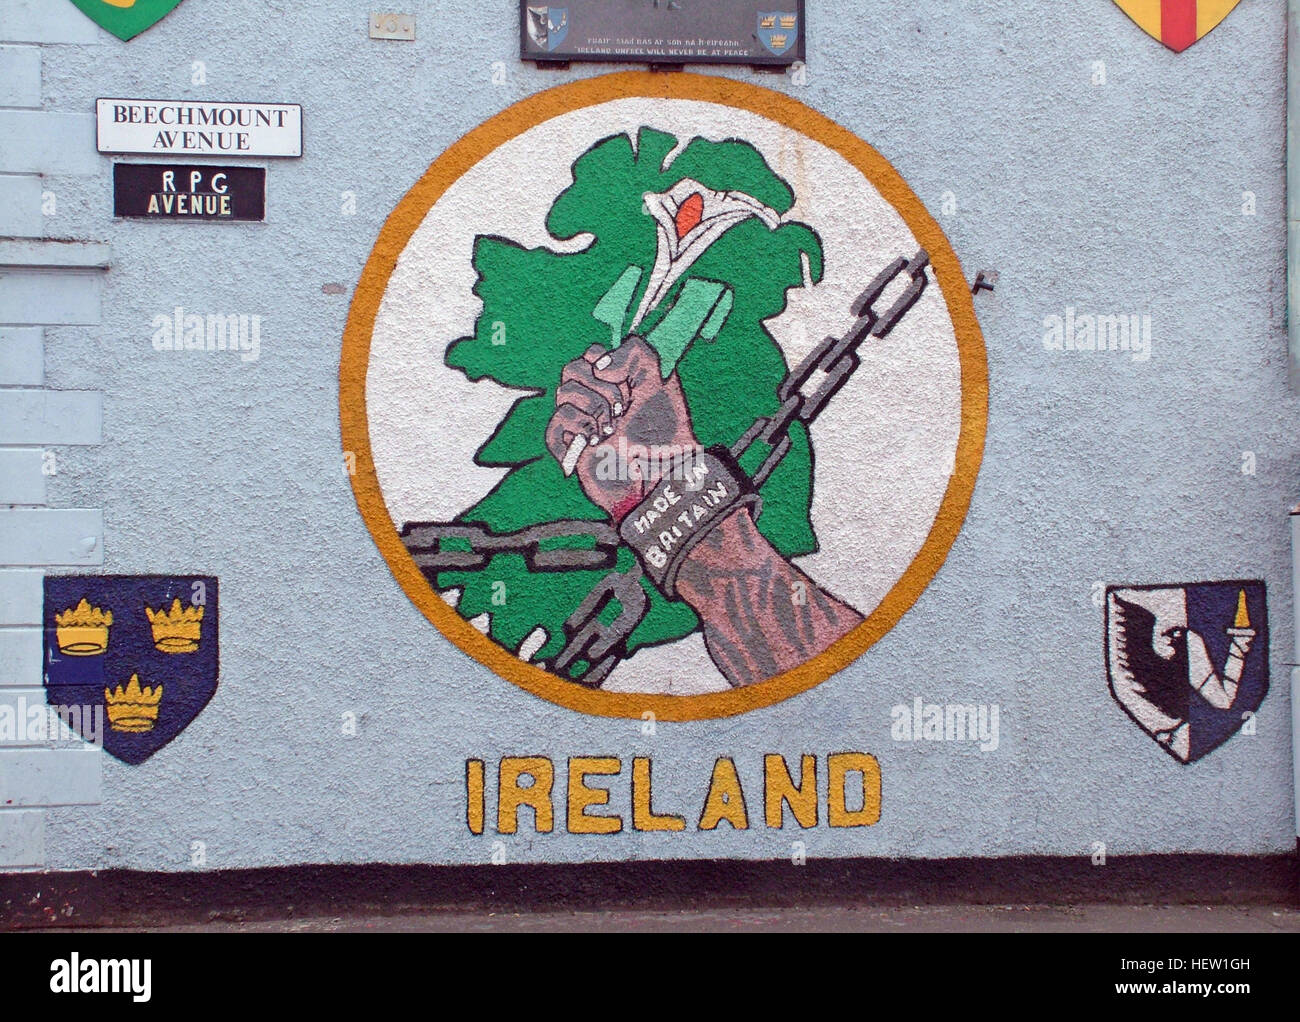 Belfast Falls Rd Republican Mural- Irelands Pain made in Britain, RPG Avenue - Beechmount detail - Stock Image